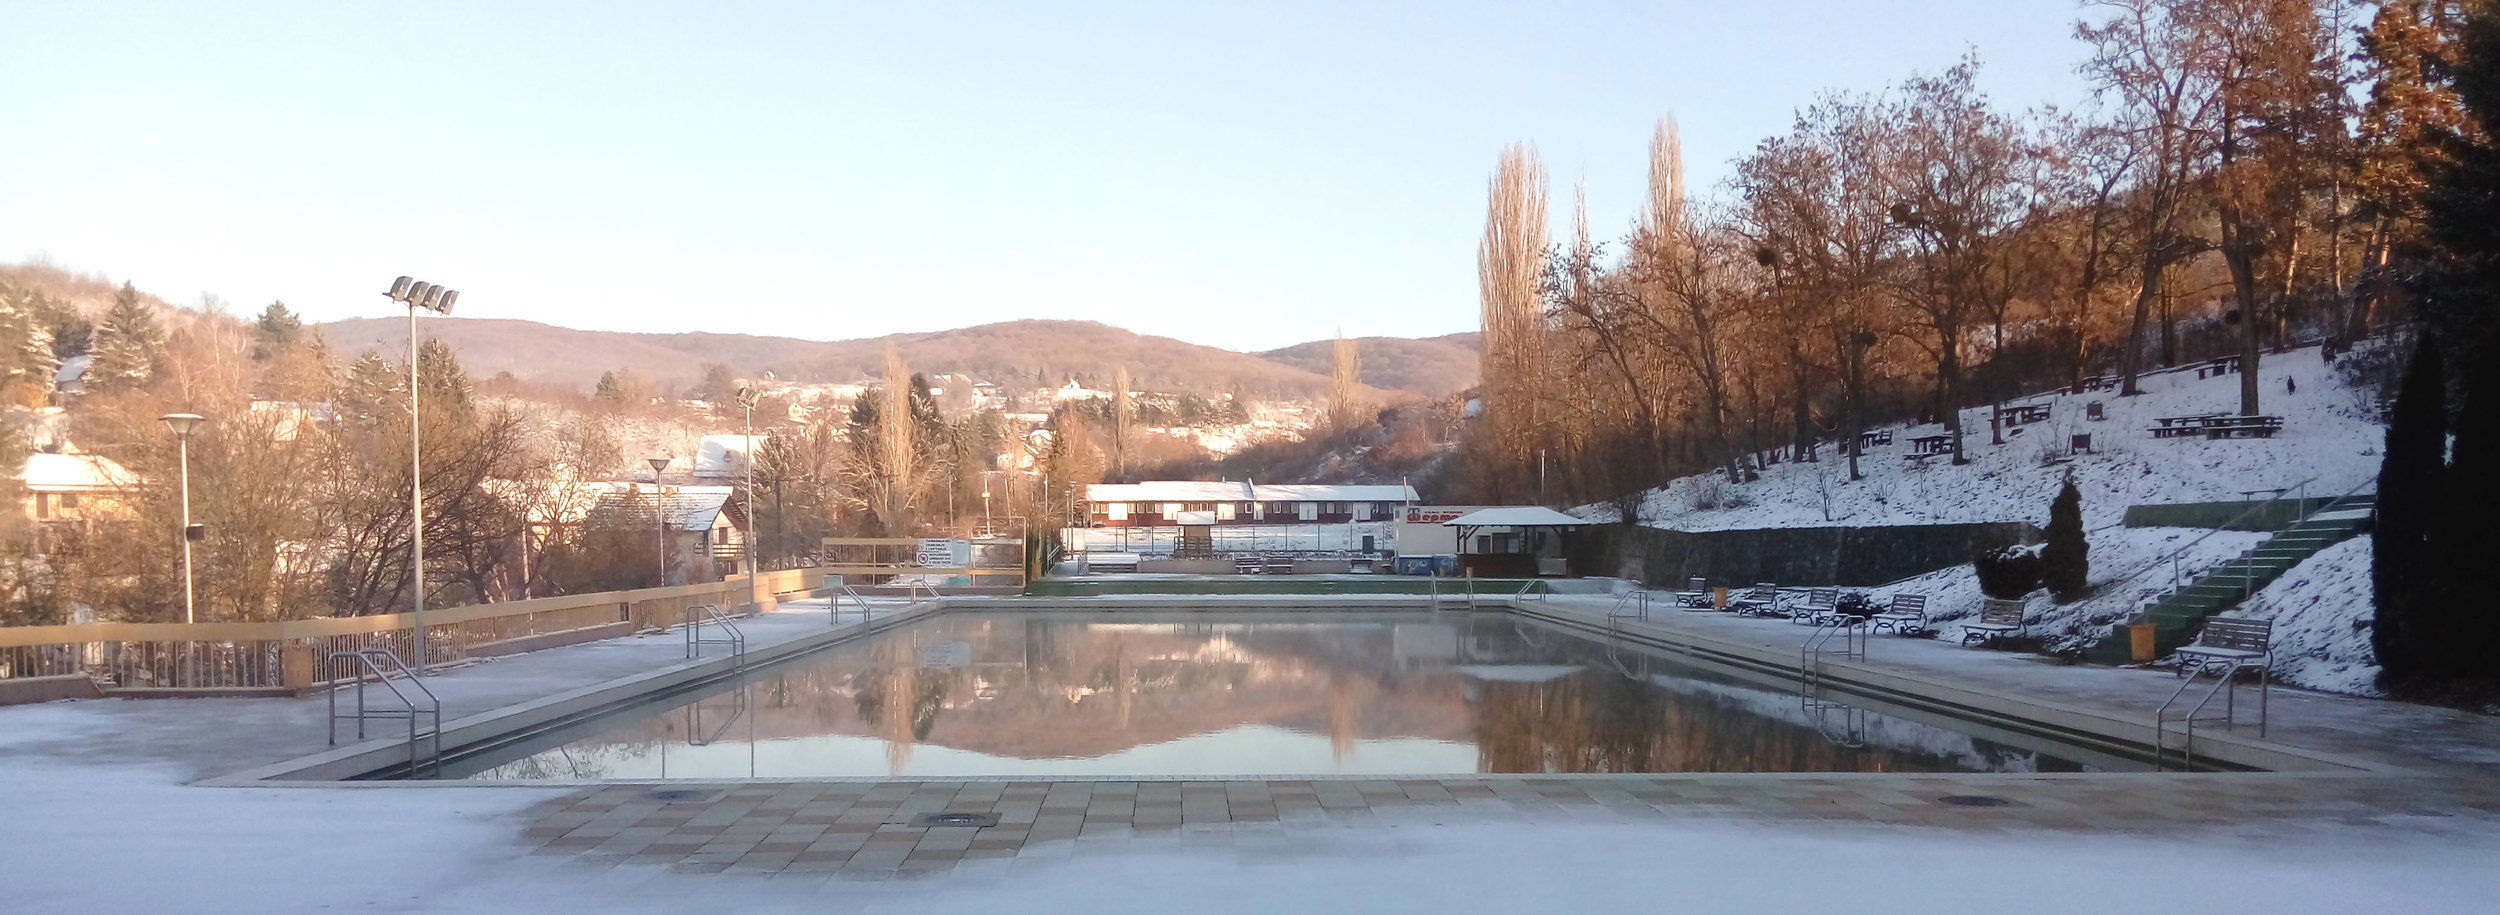 The outdoor pool with hot spring water is only open in summer.